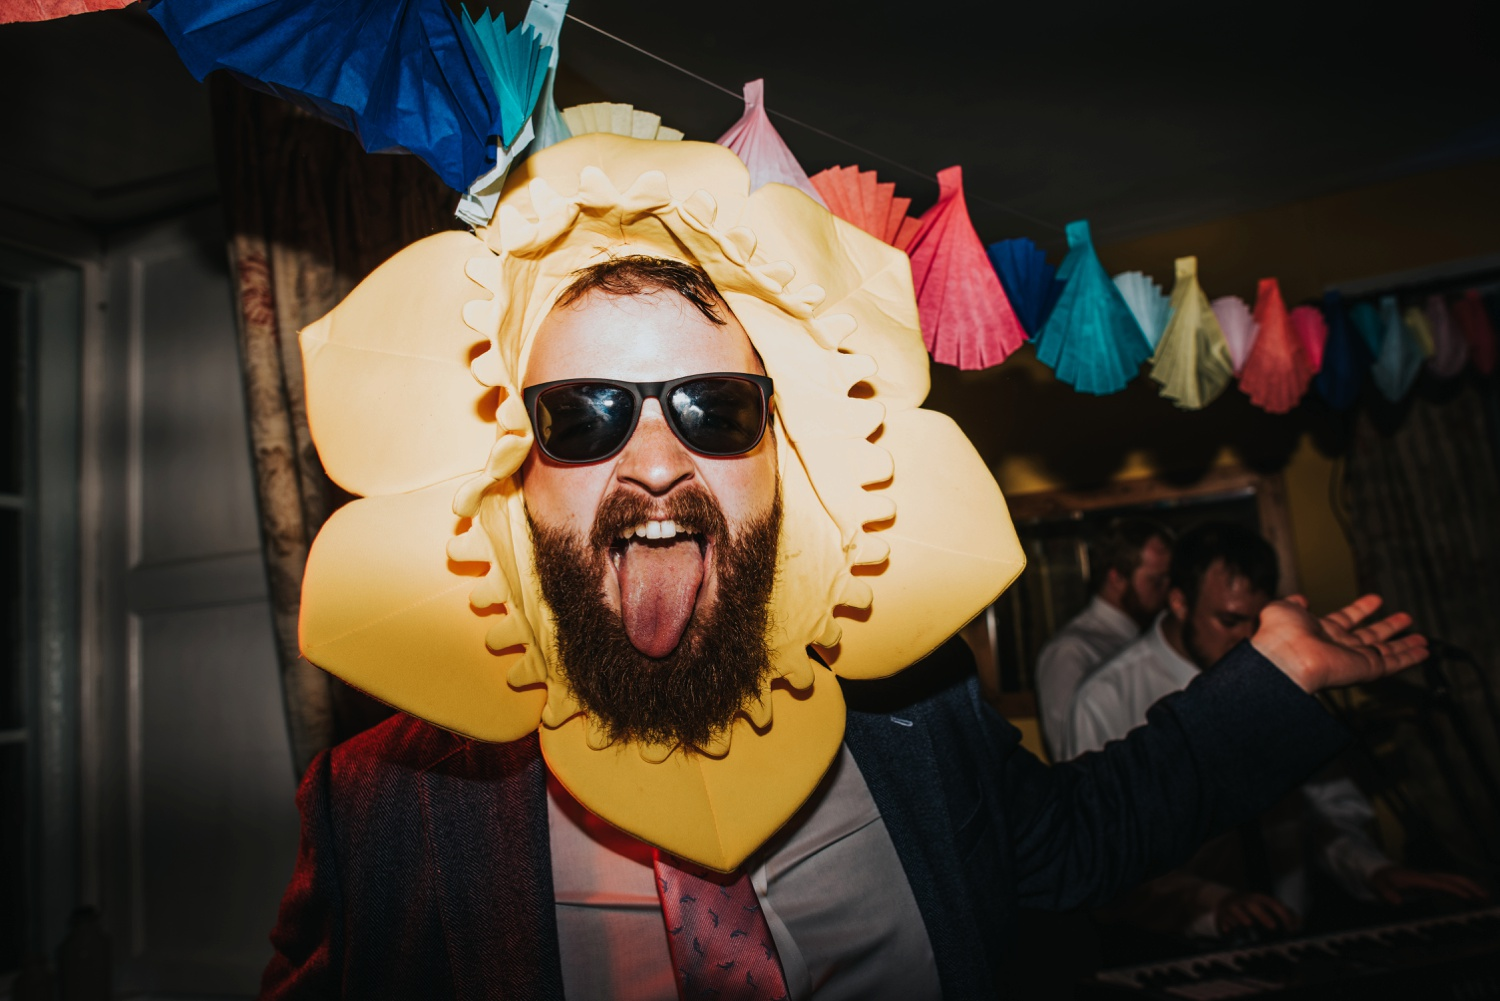 man dancing with tongue out, wearing a flower hat